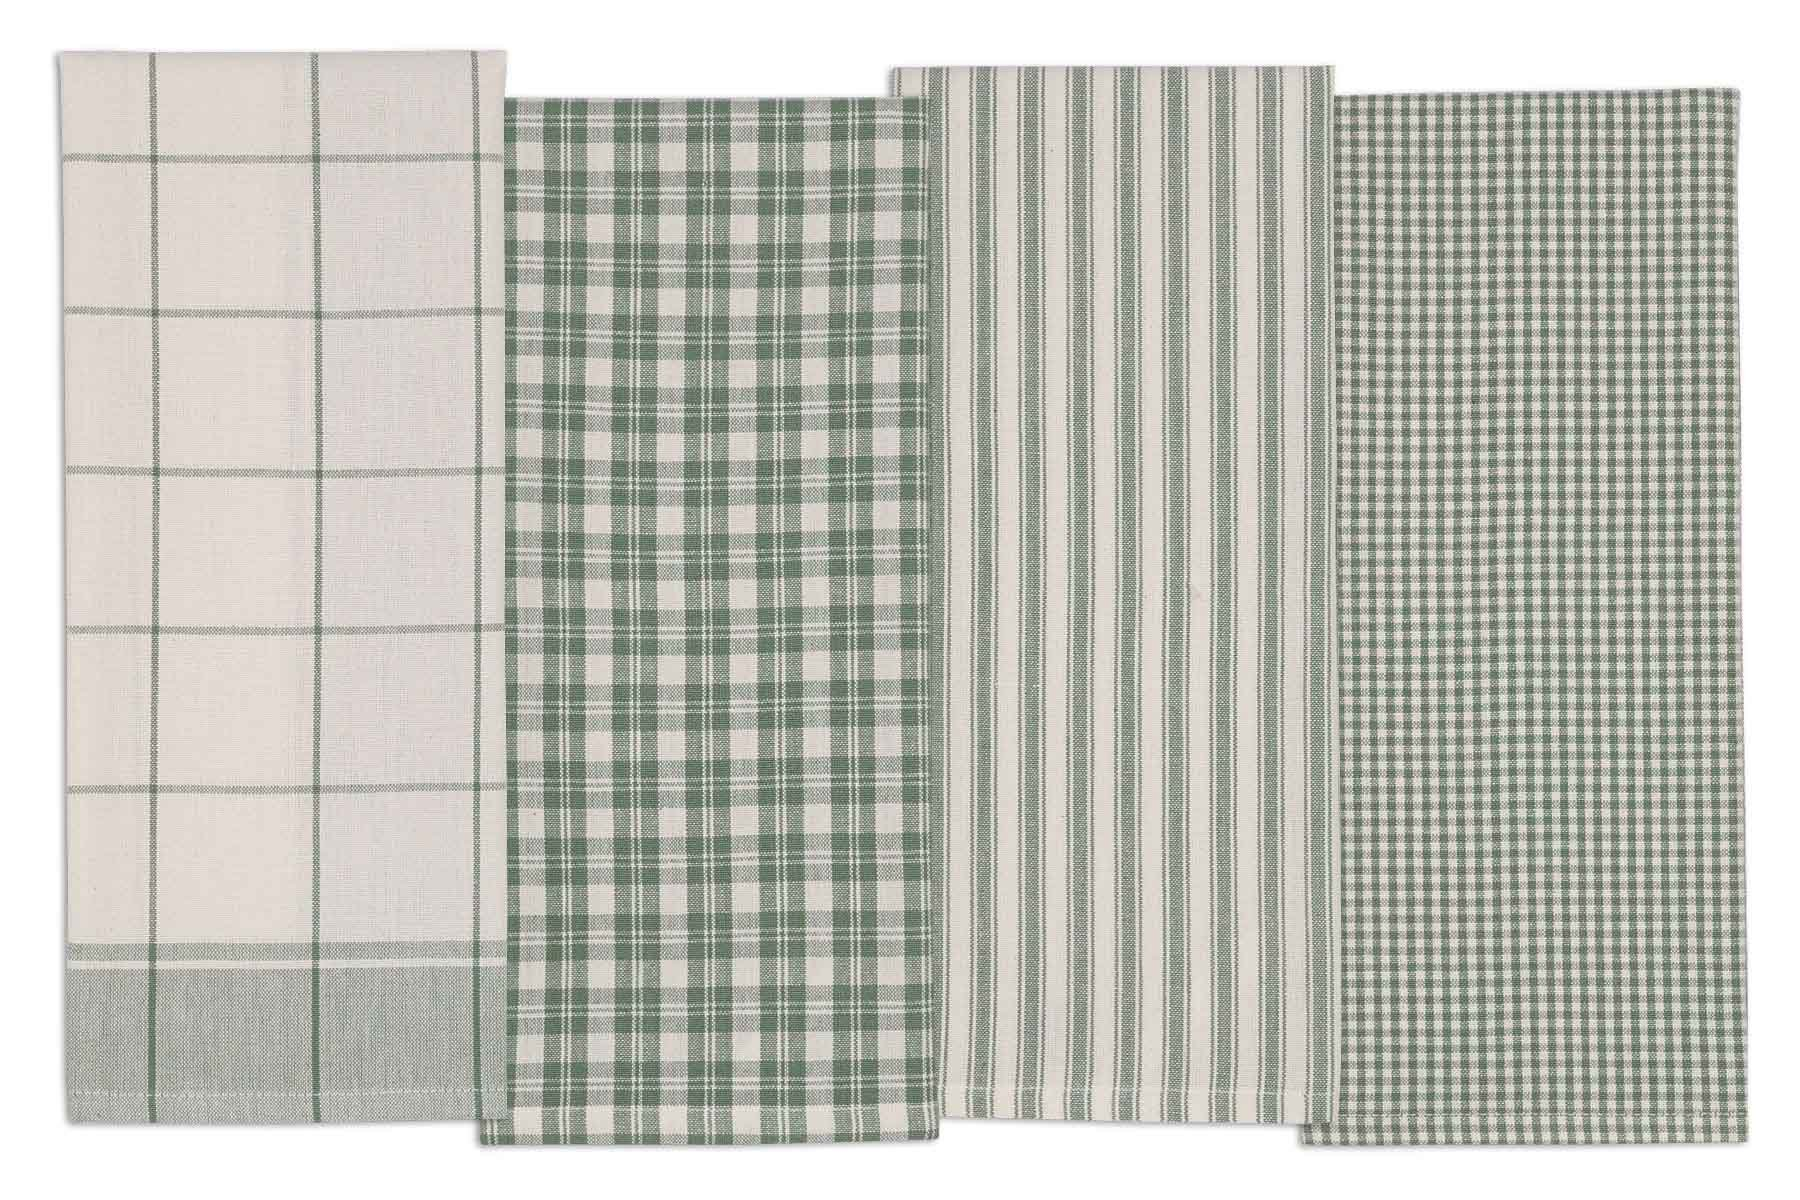 DII COSD35161 Cotton Dish, Set of 4, Decorative Oversized Towels, Perfect for Every Day Home Kitchen, Holidays and Housewarming Gifts, 18x28, Sage